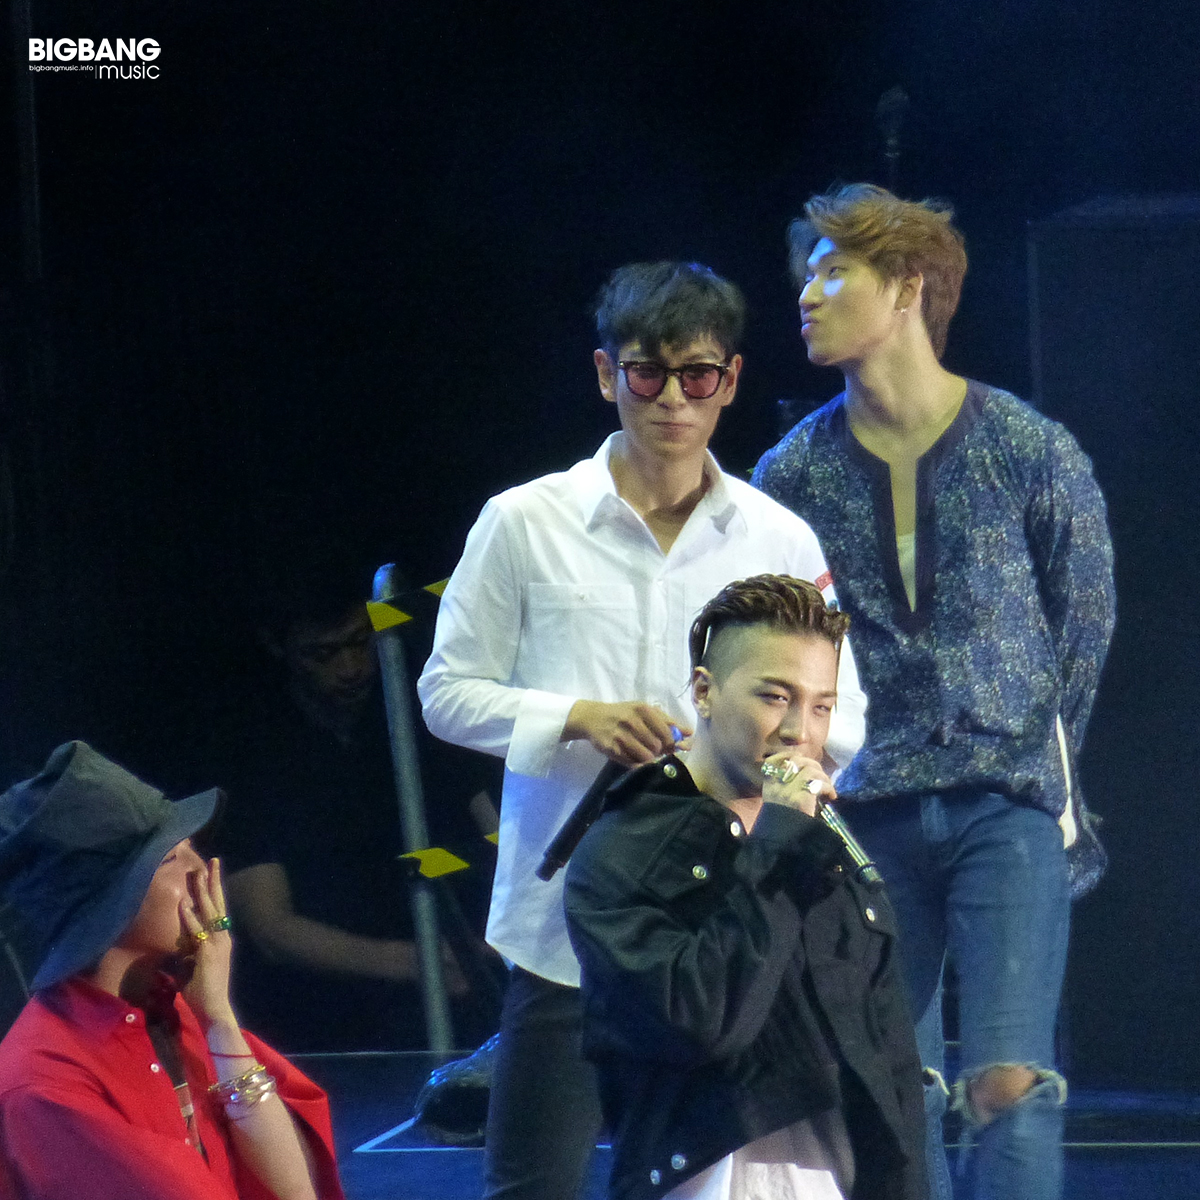 BBmusic-BIGBANG-Hong-Kong-Day-1-2016-07-22-12